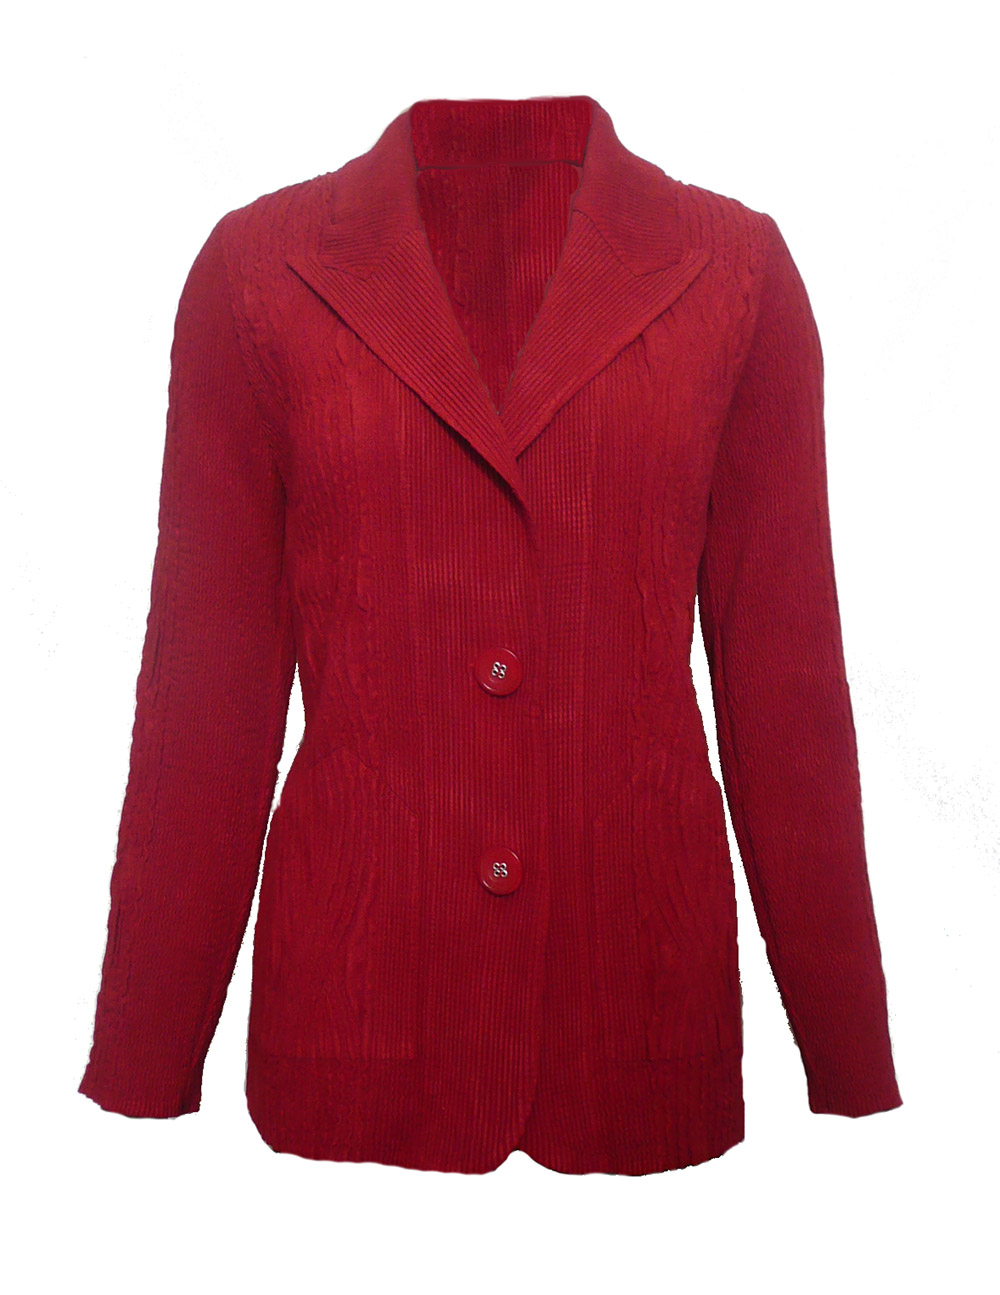 jacket red crinkle.jpg